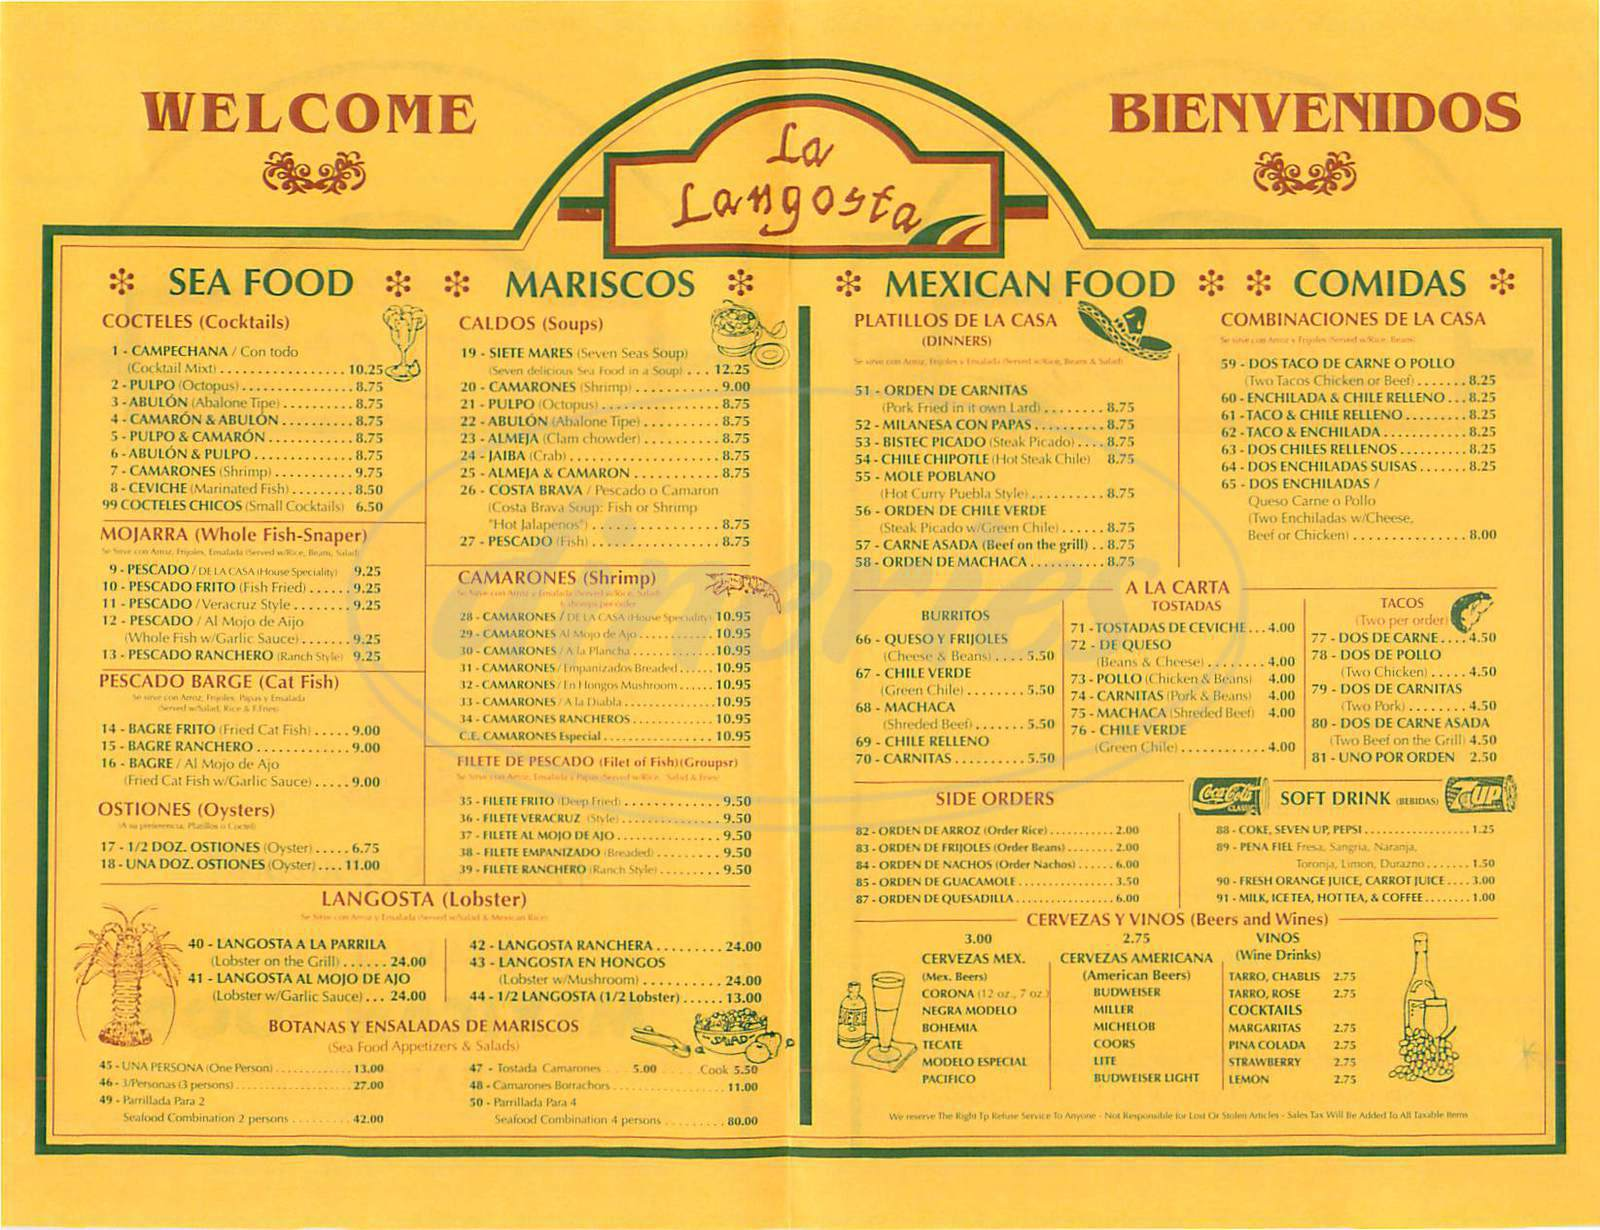 menu for La Langosta